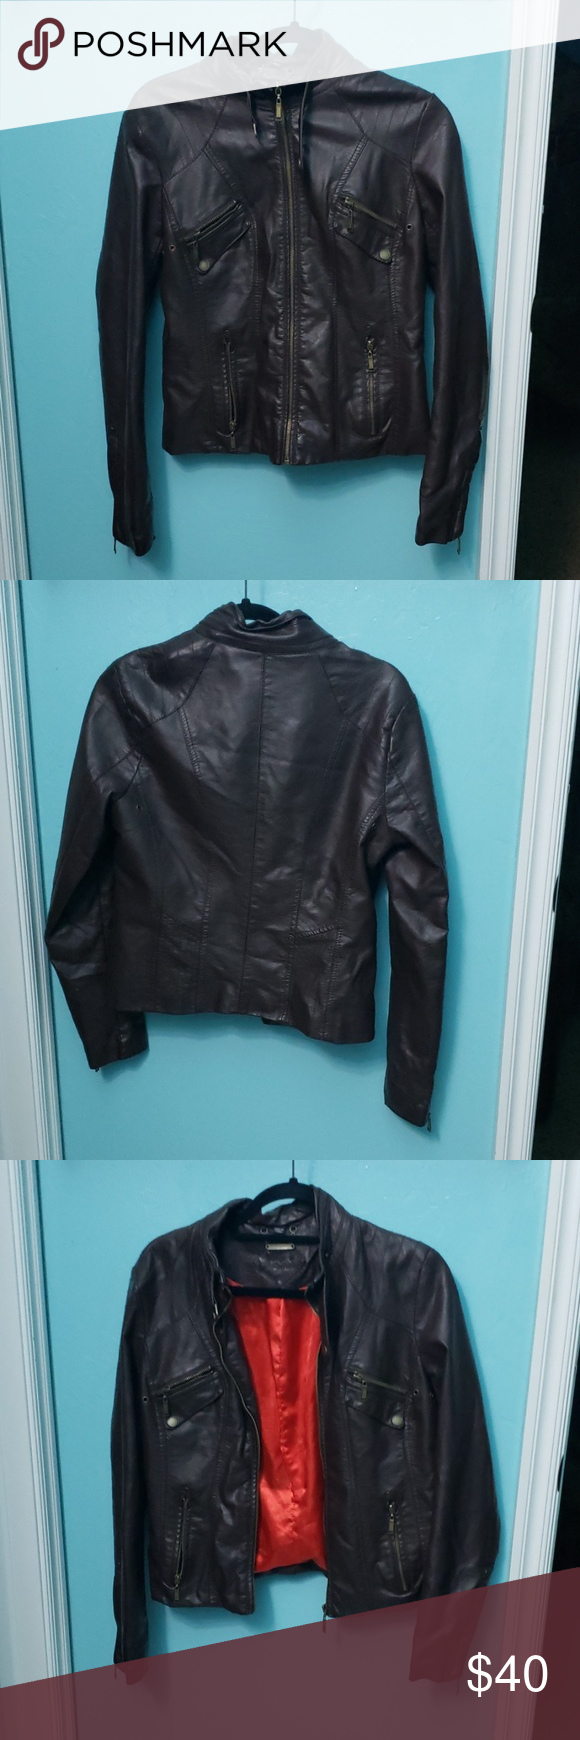 Faux Leather Jacket Despite The Photos The Hacket Is A Dark Chocolate Brown With Red Lining In The Inside Gold Zip Faux Leather Jackets Leather Jacket Jackets [ 1740 x 580 Pixel ]